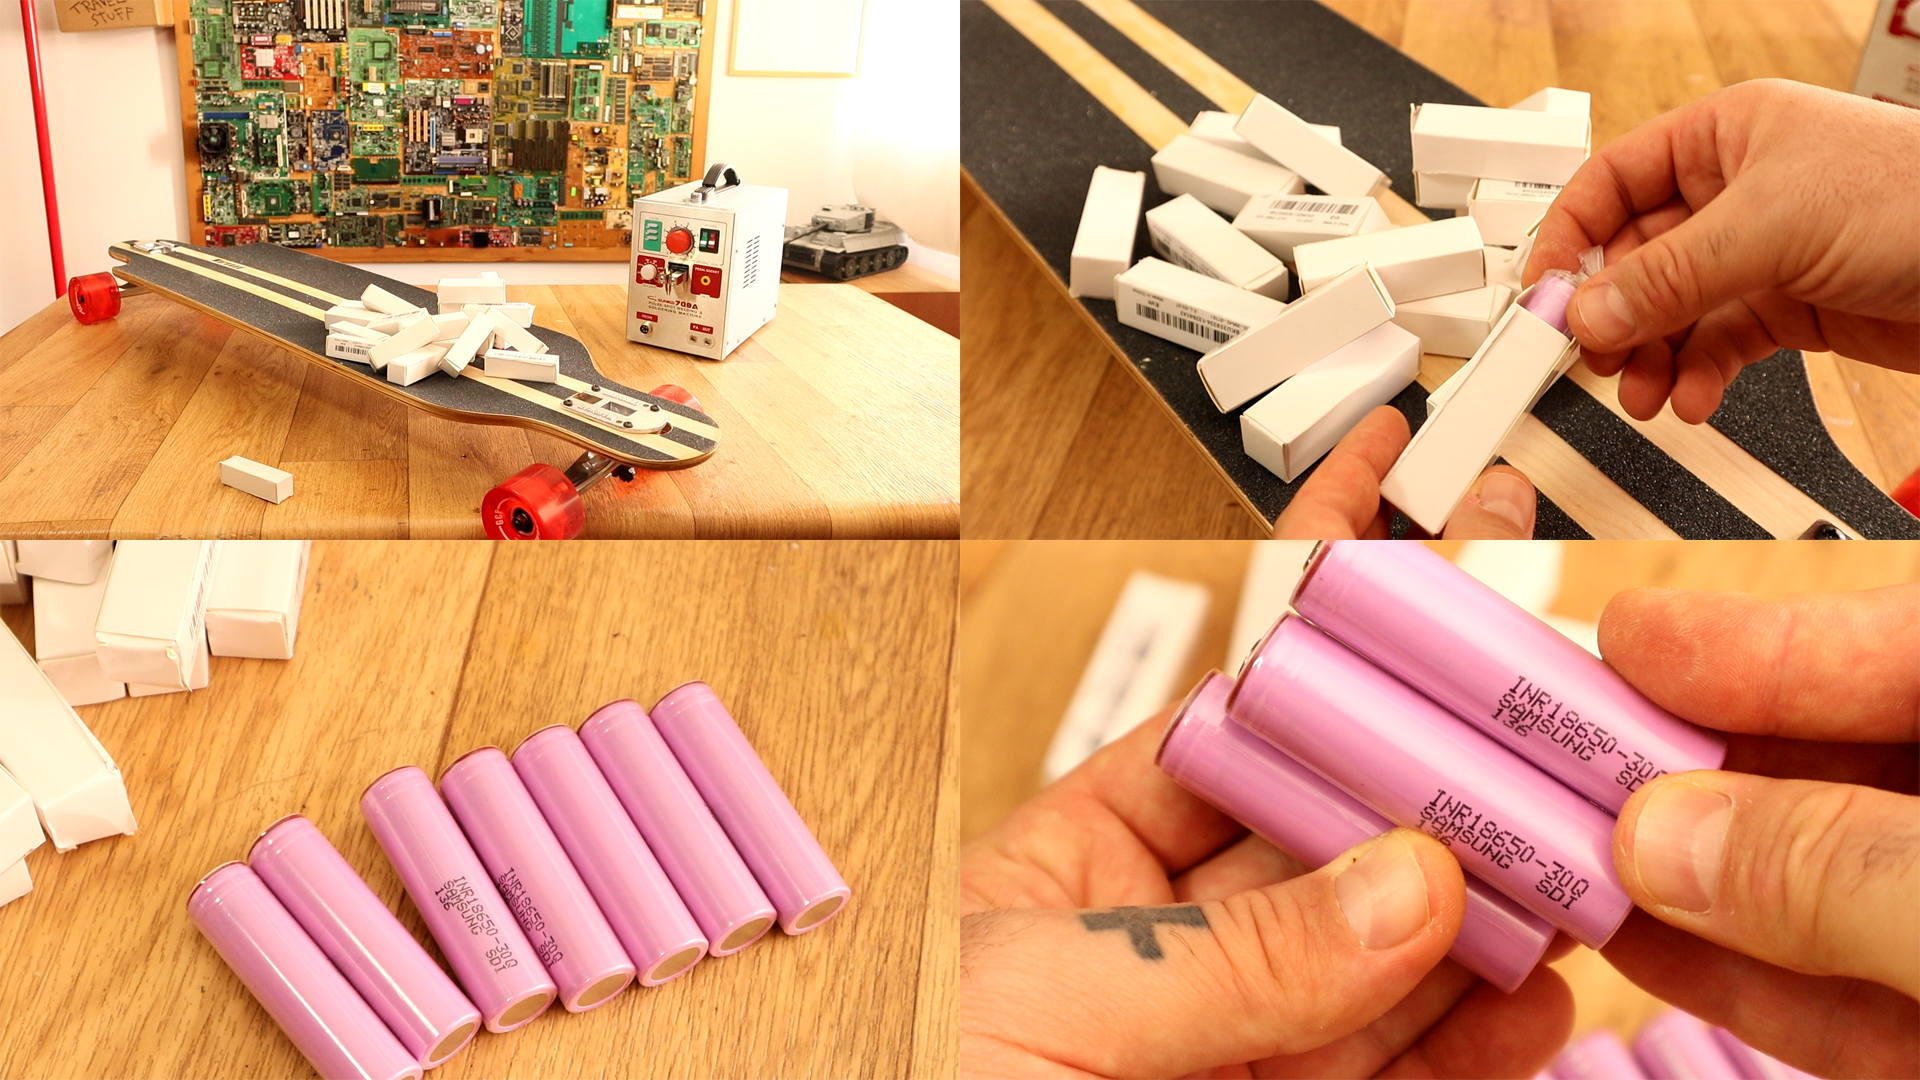 DIY Liion 6S battery pack